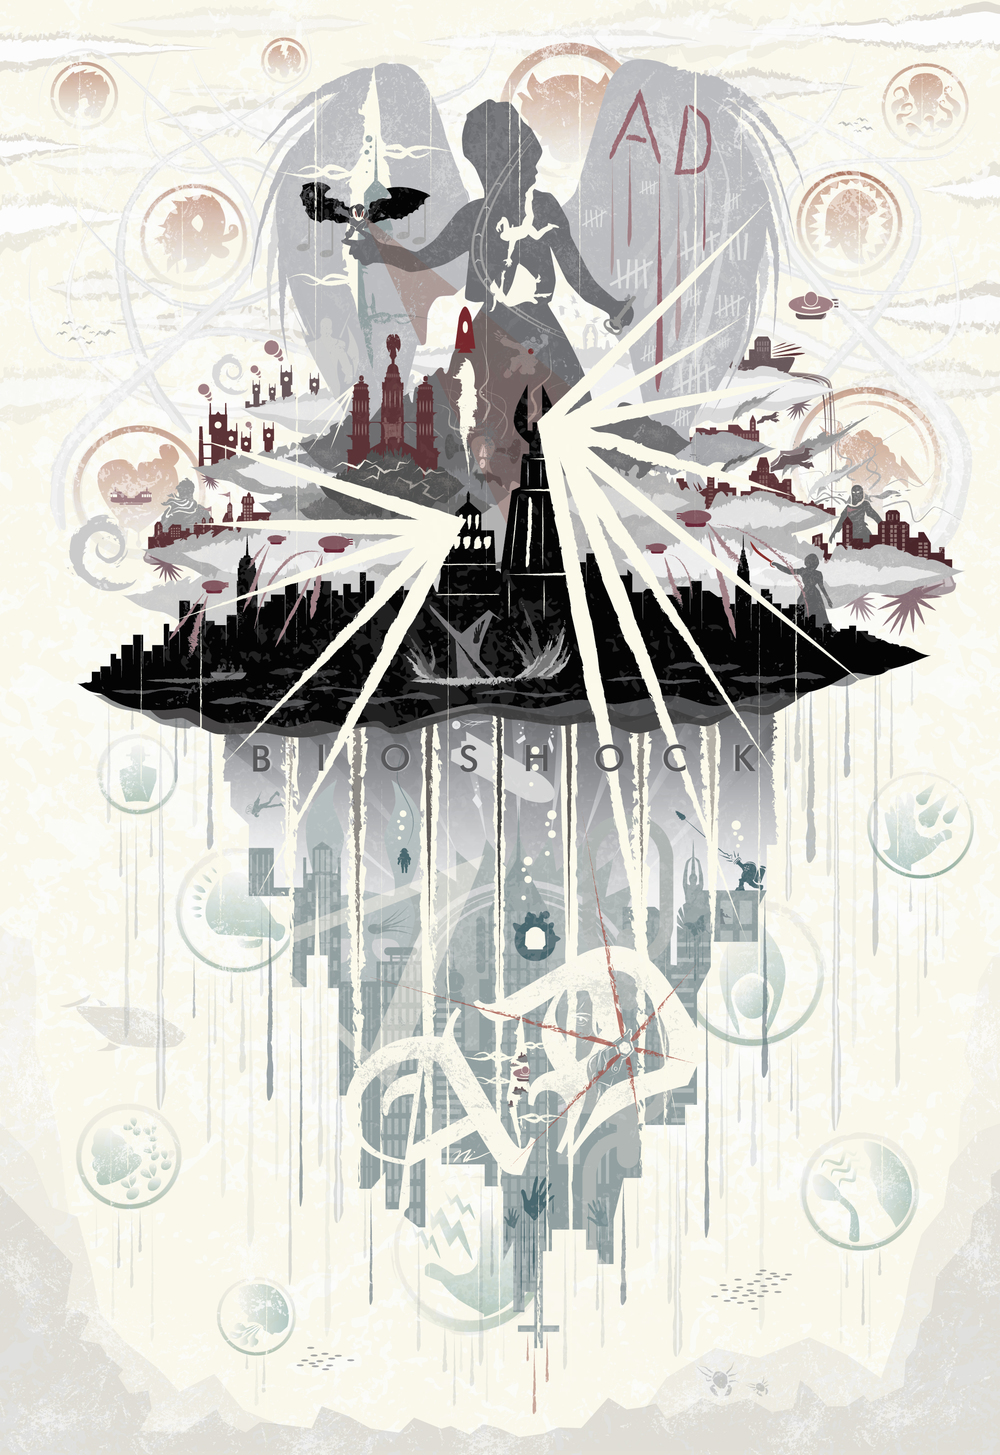 Bird-and-Cage-BioShock+Series+Poster.jpg